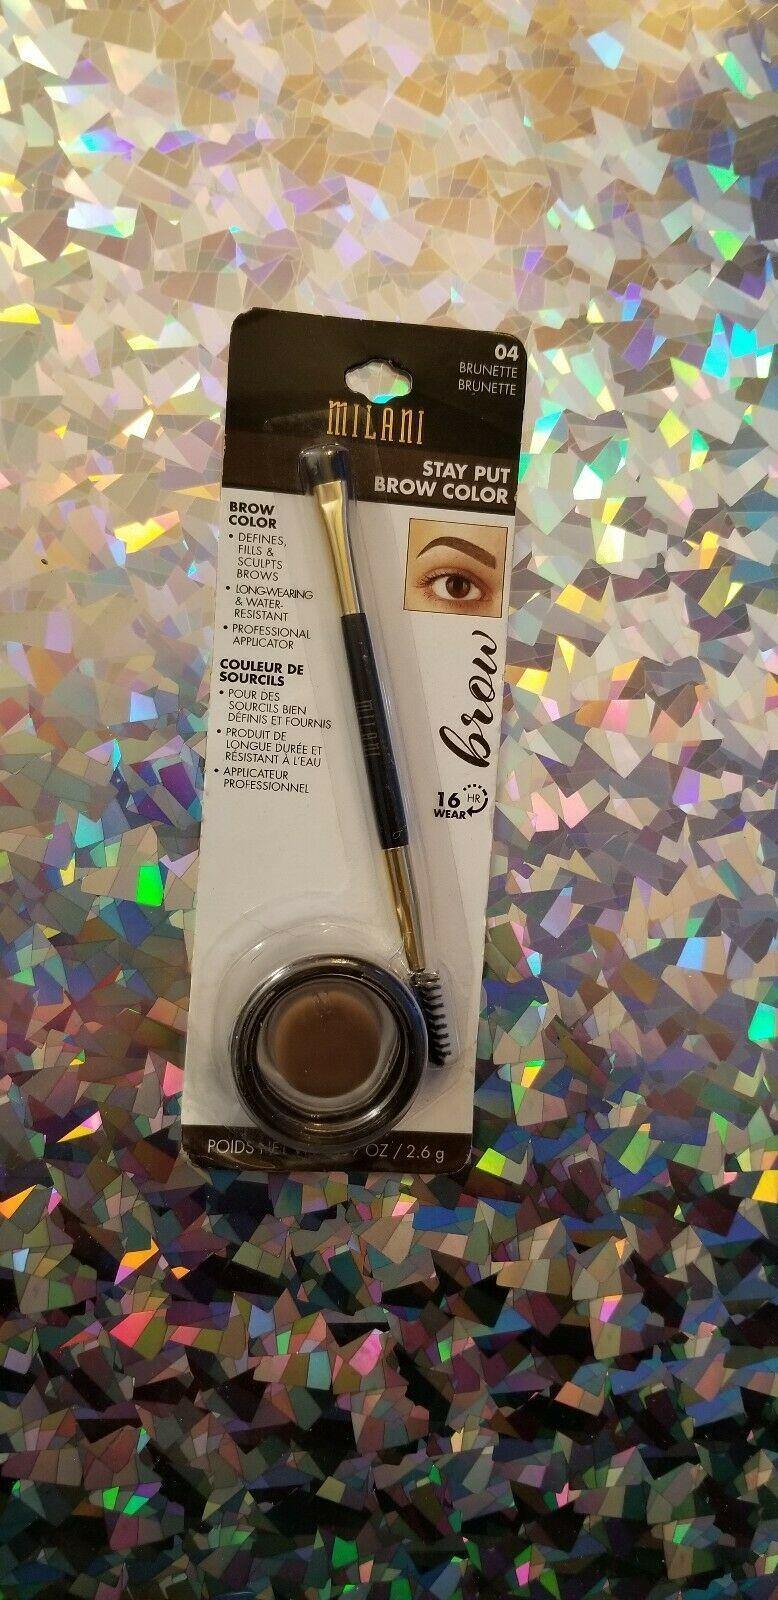 Milani Stay Put Brow Color Brunette 04 - $7.03